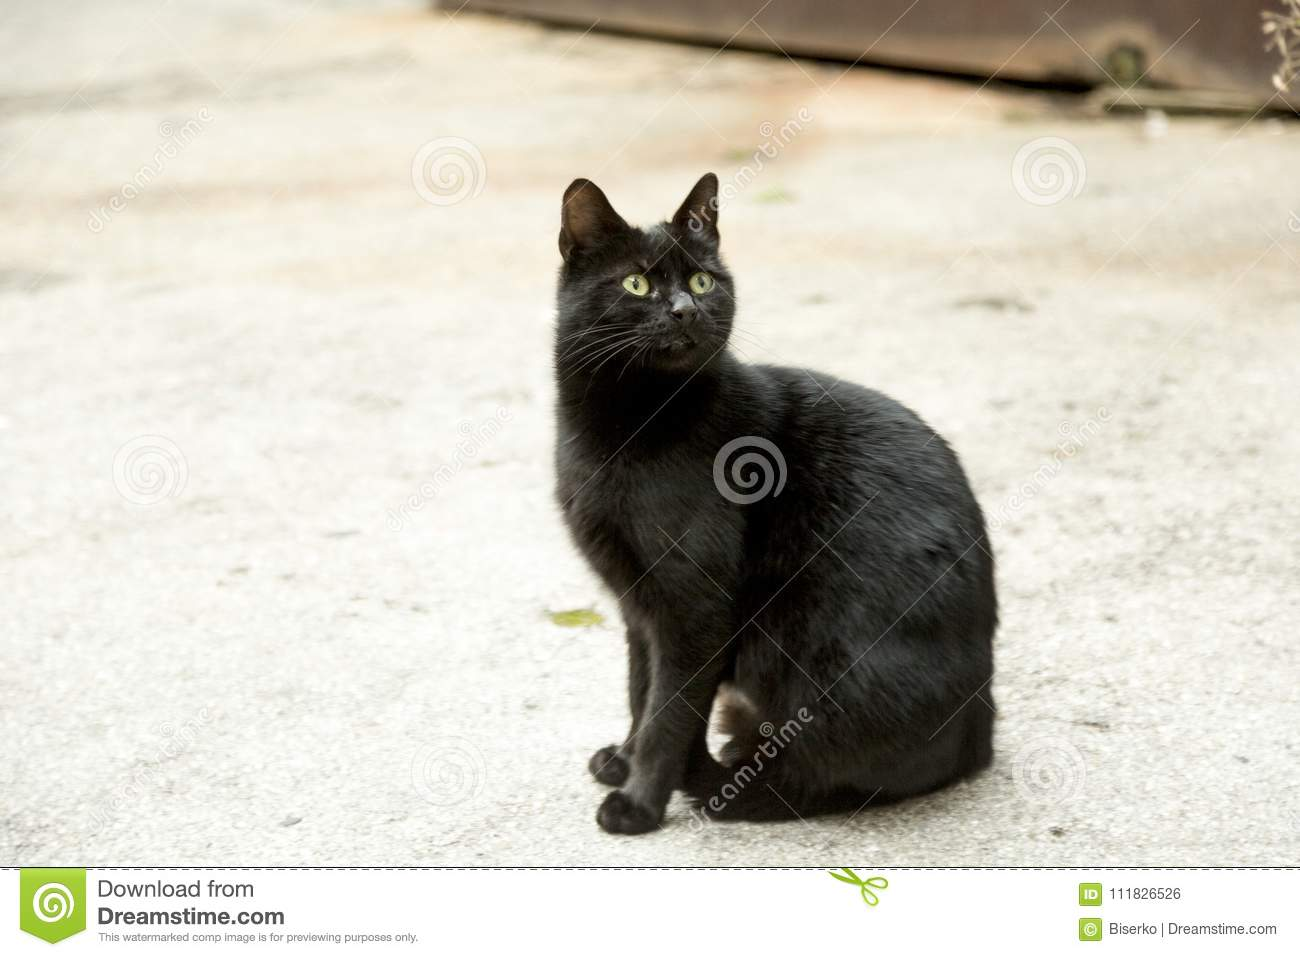 Meaning Of The Black Cat Symbol Stock Photo Image Of Cute Look